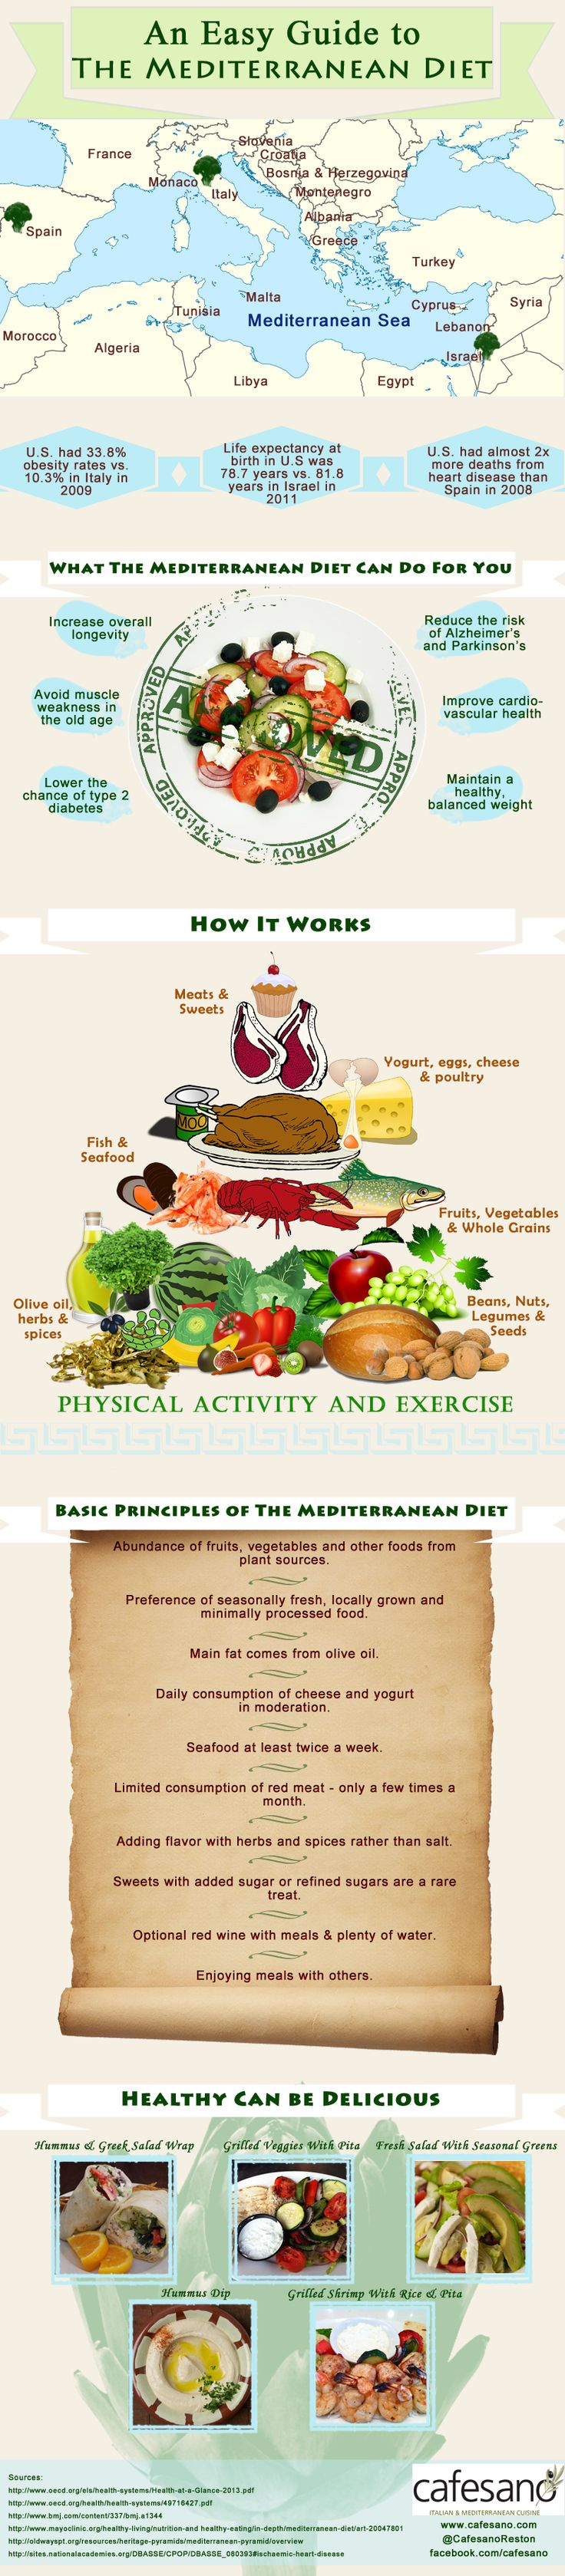 An Easy Guide to the Mediterranean Diet by visualistan #Infographic #Mediterranean_Diet